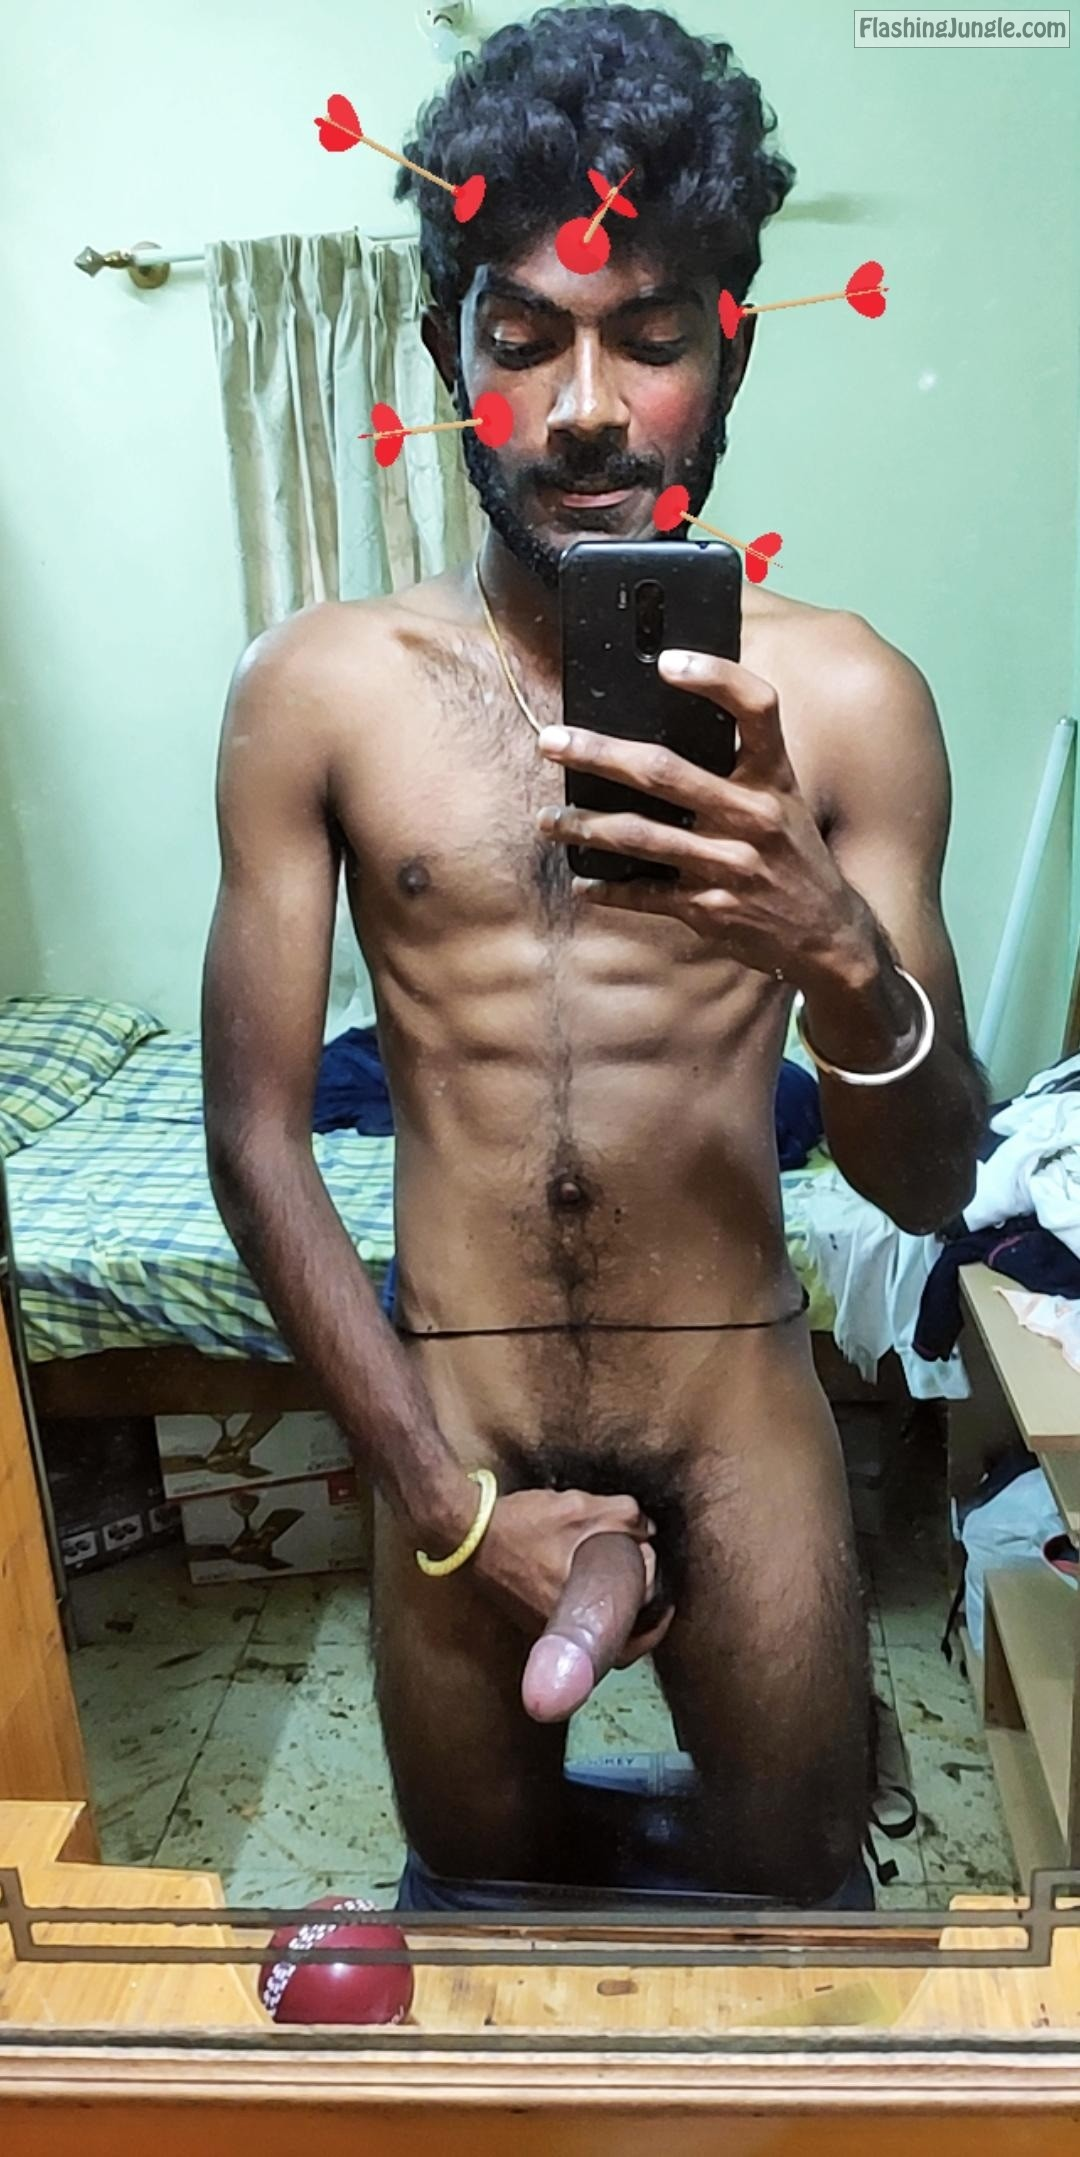 Real Nudity Dick Flash Pics